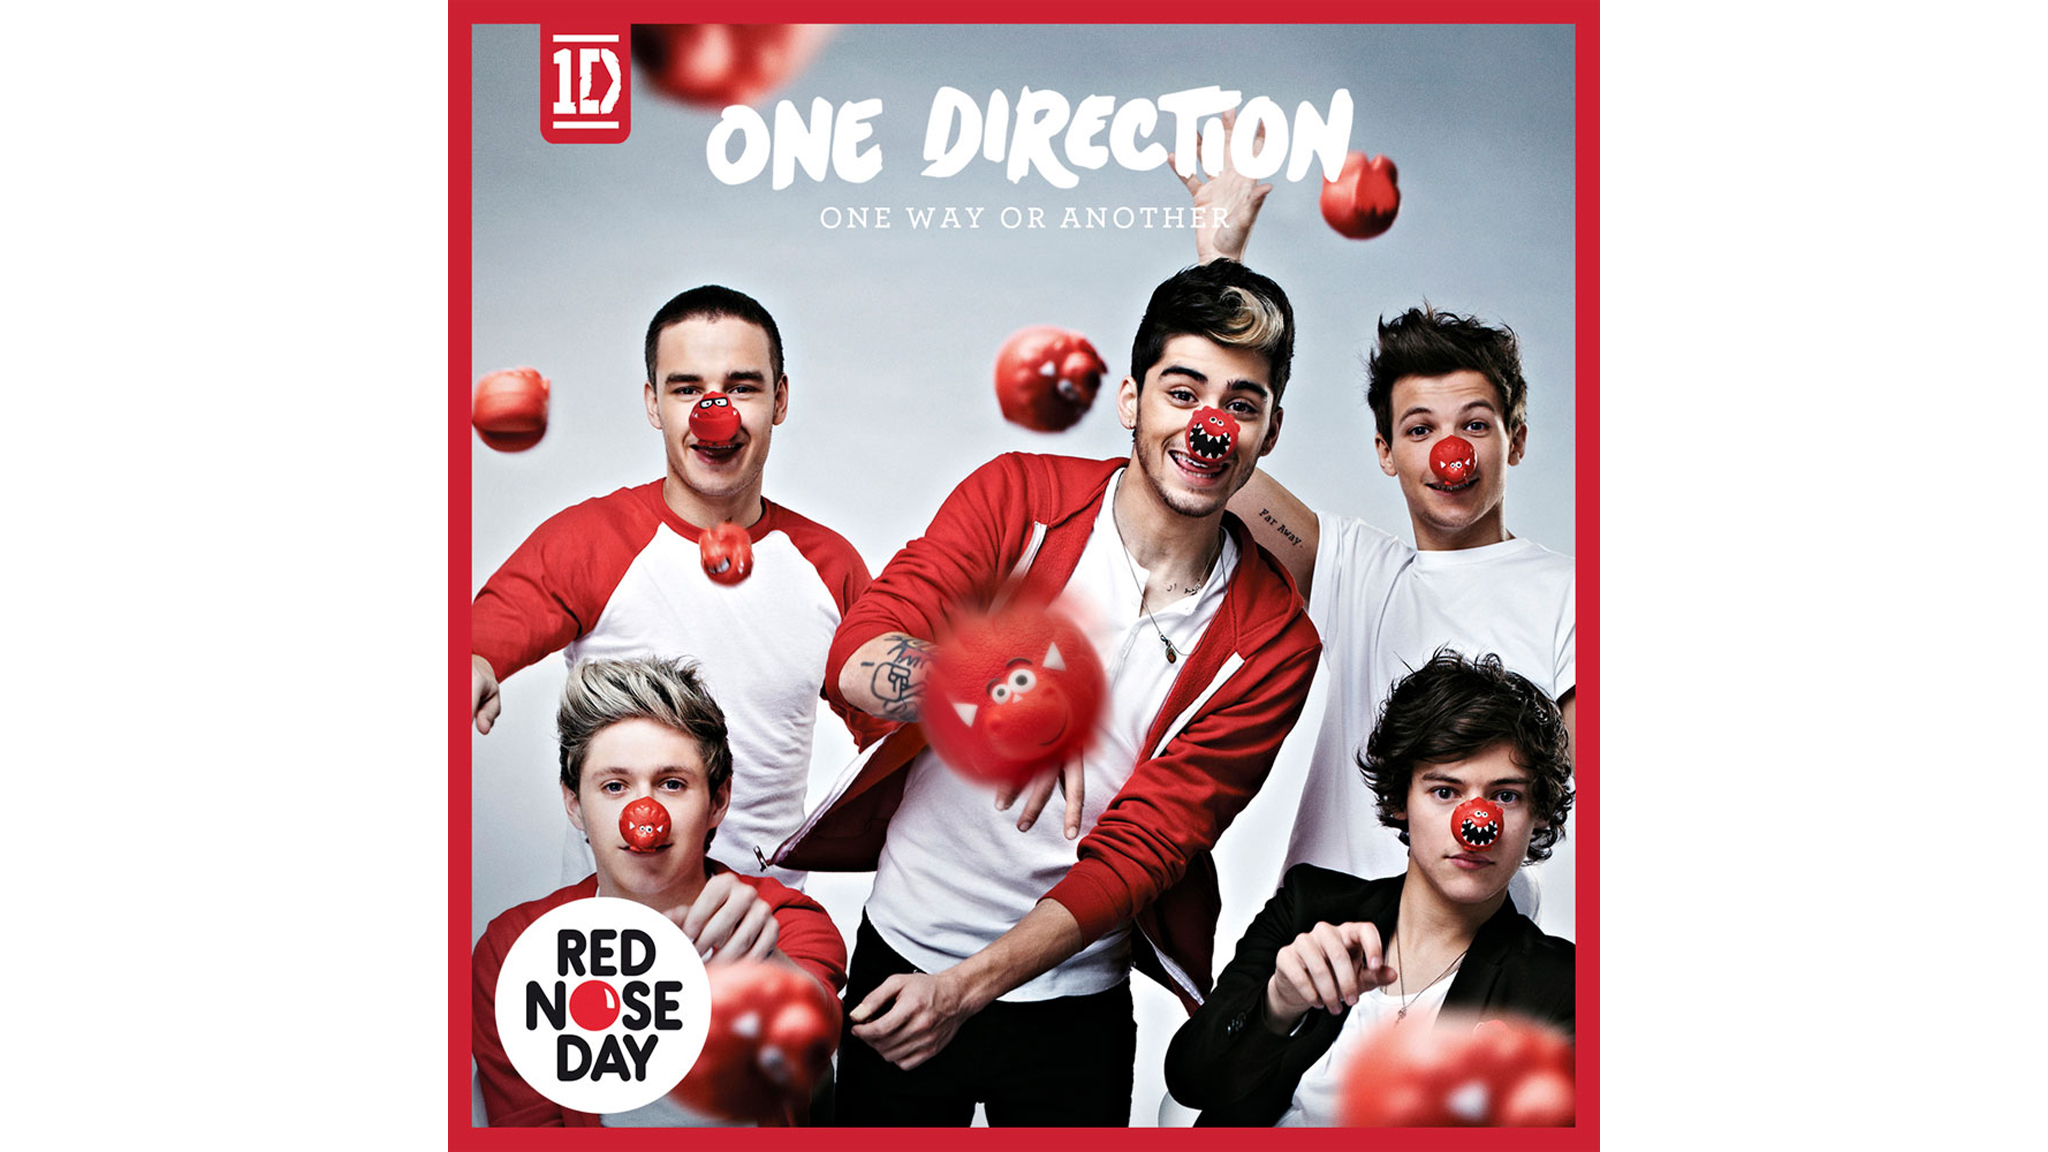 one way or another, one direction